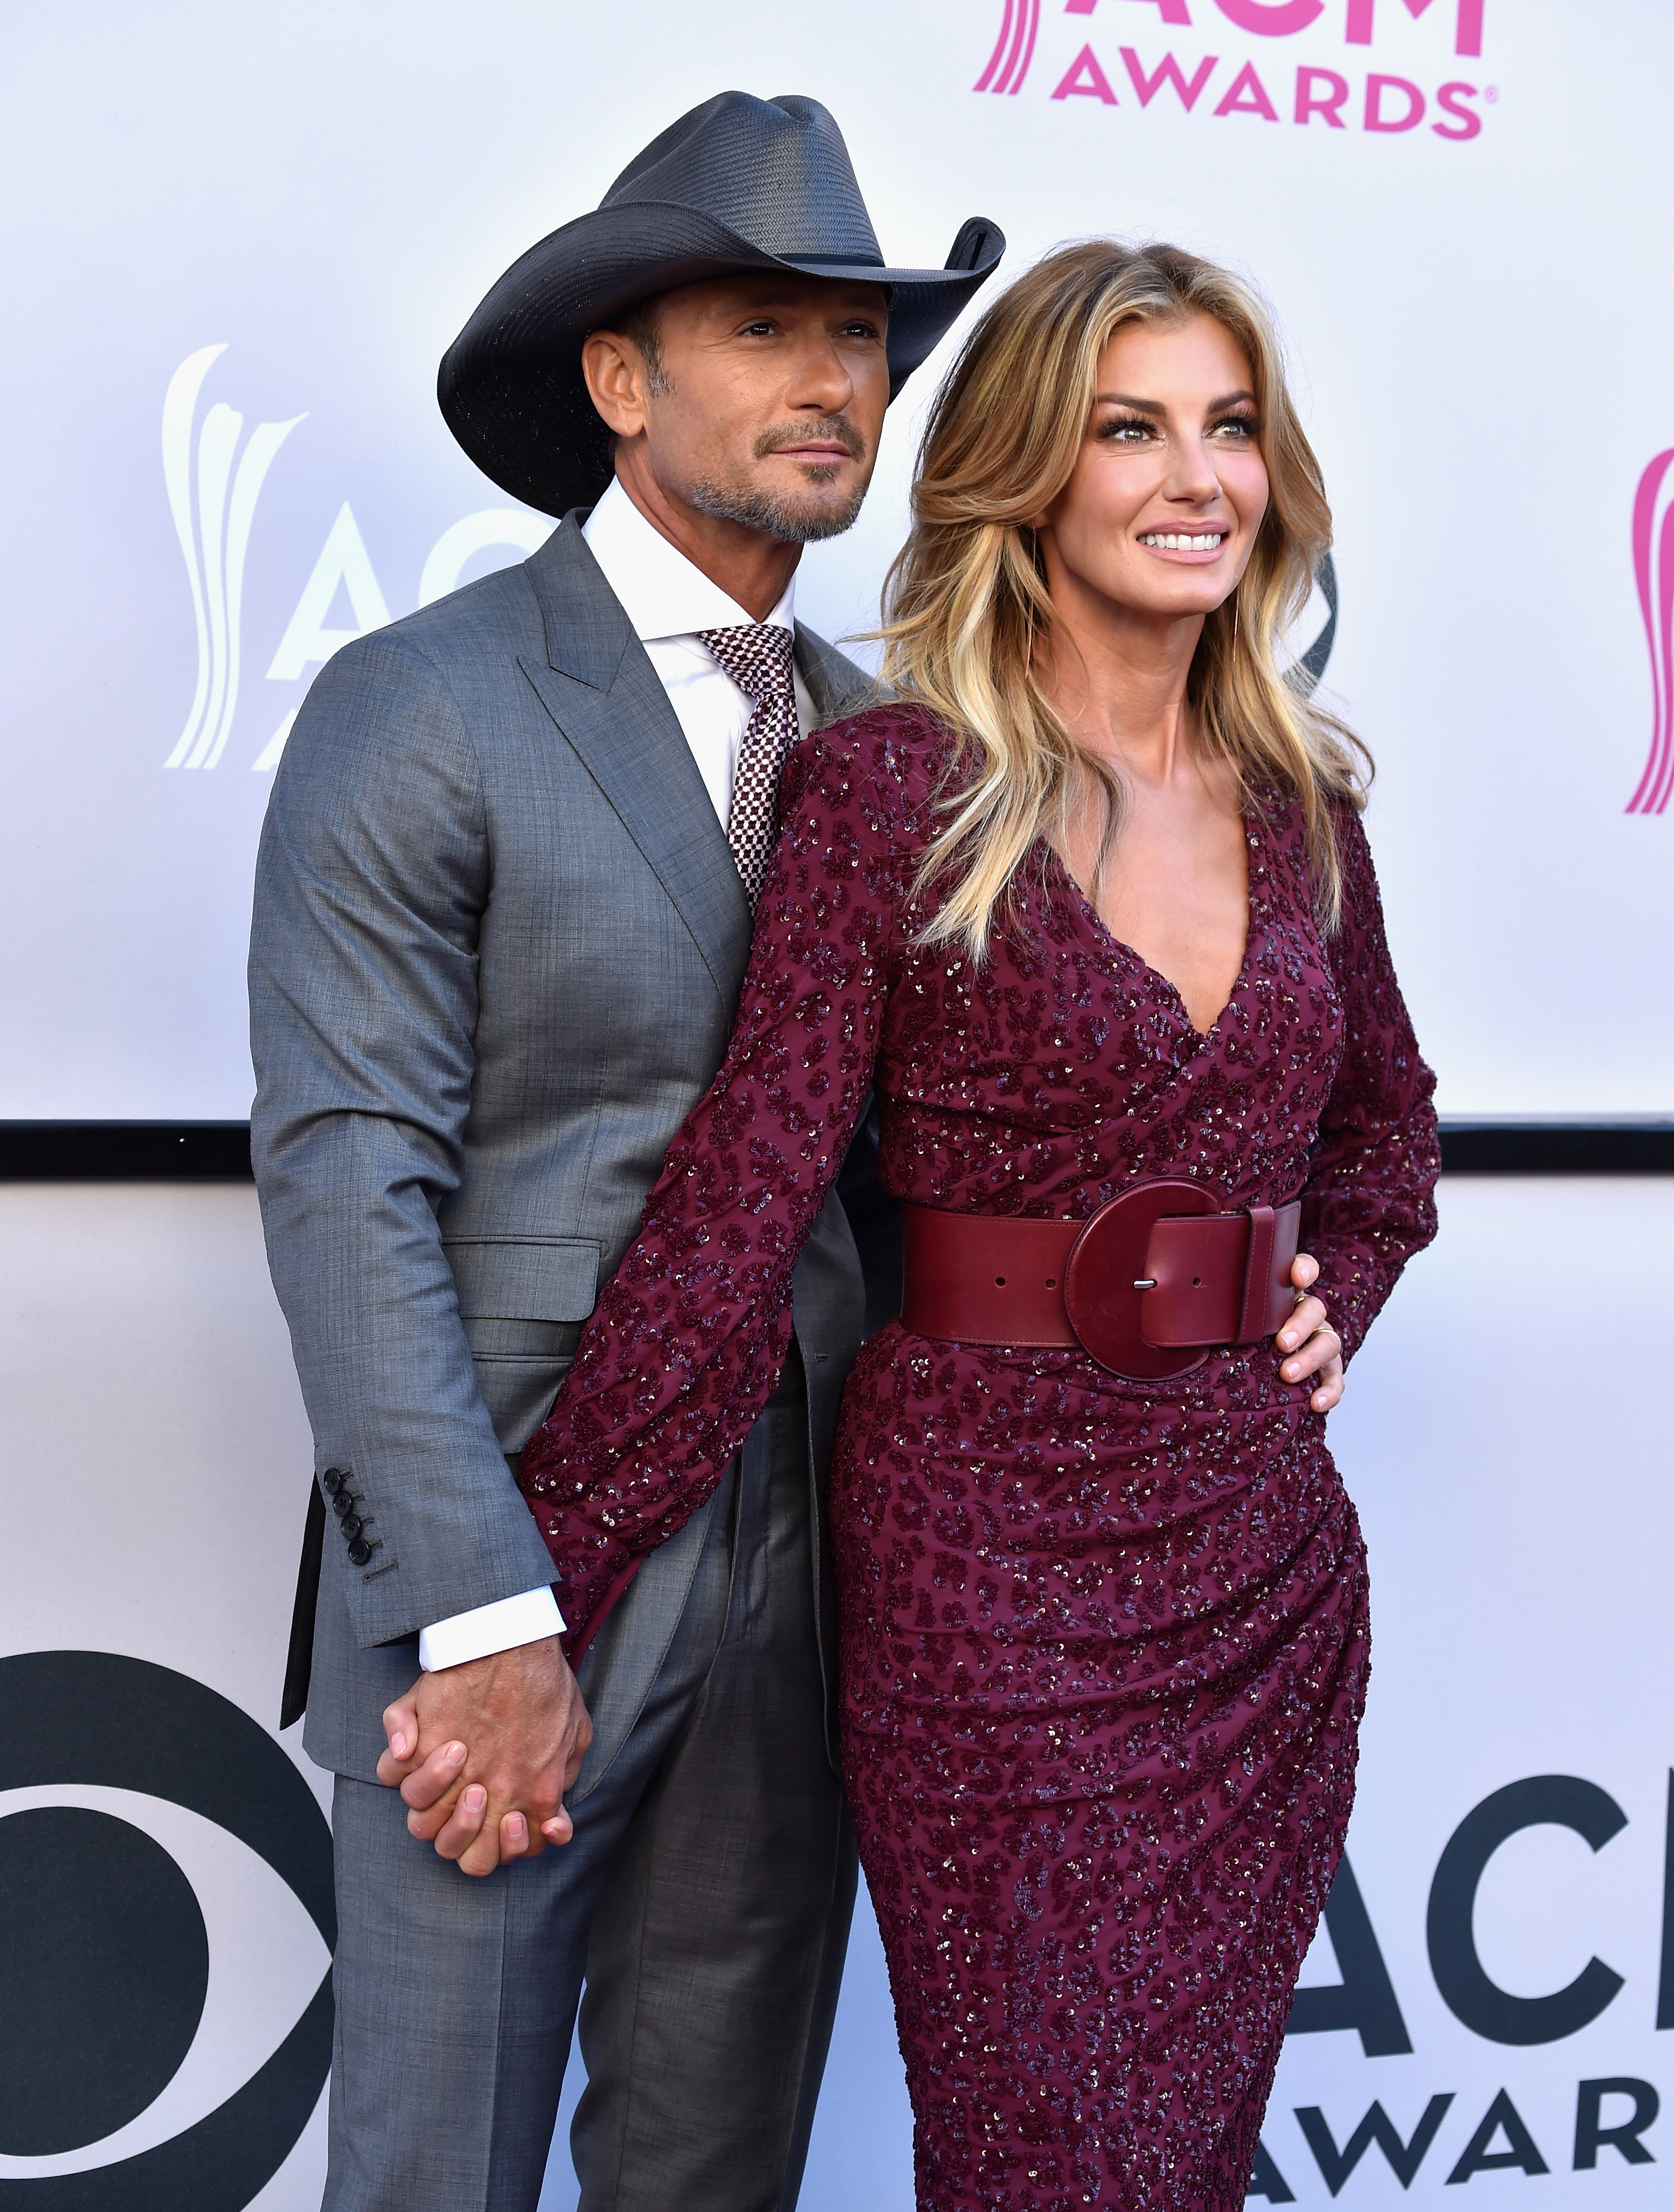 Tim McGraw and Faith Hill; Photo by Frazer Harrison/Getty Images